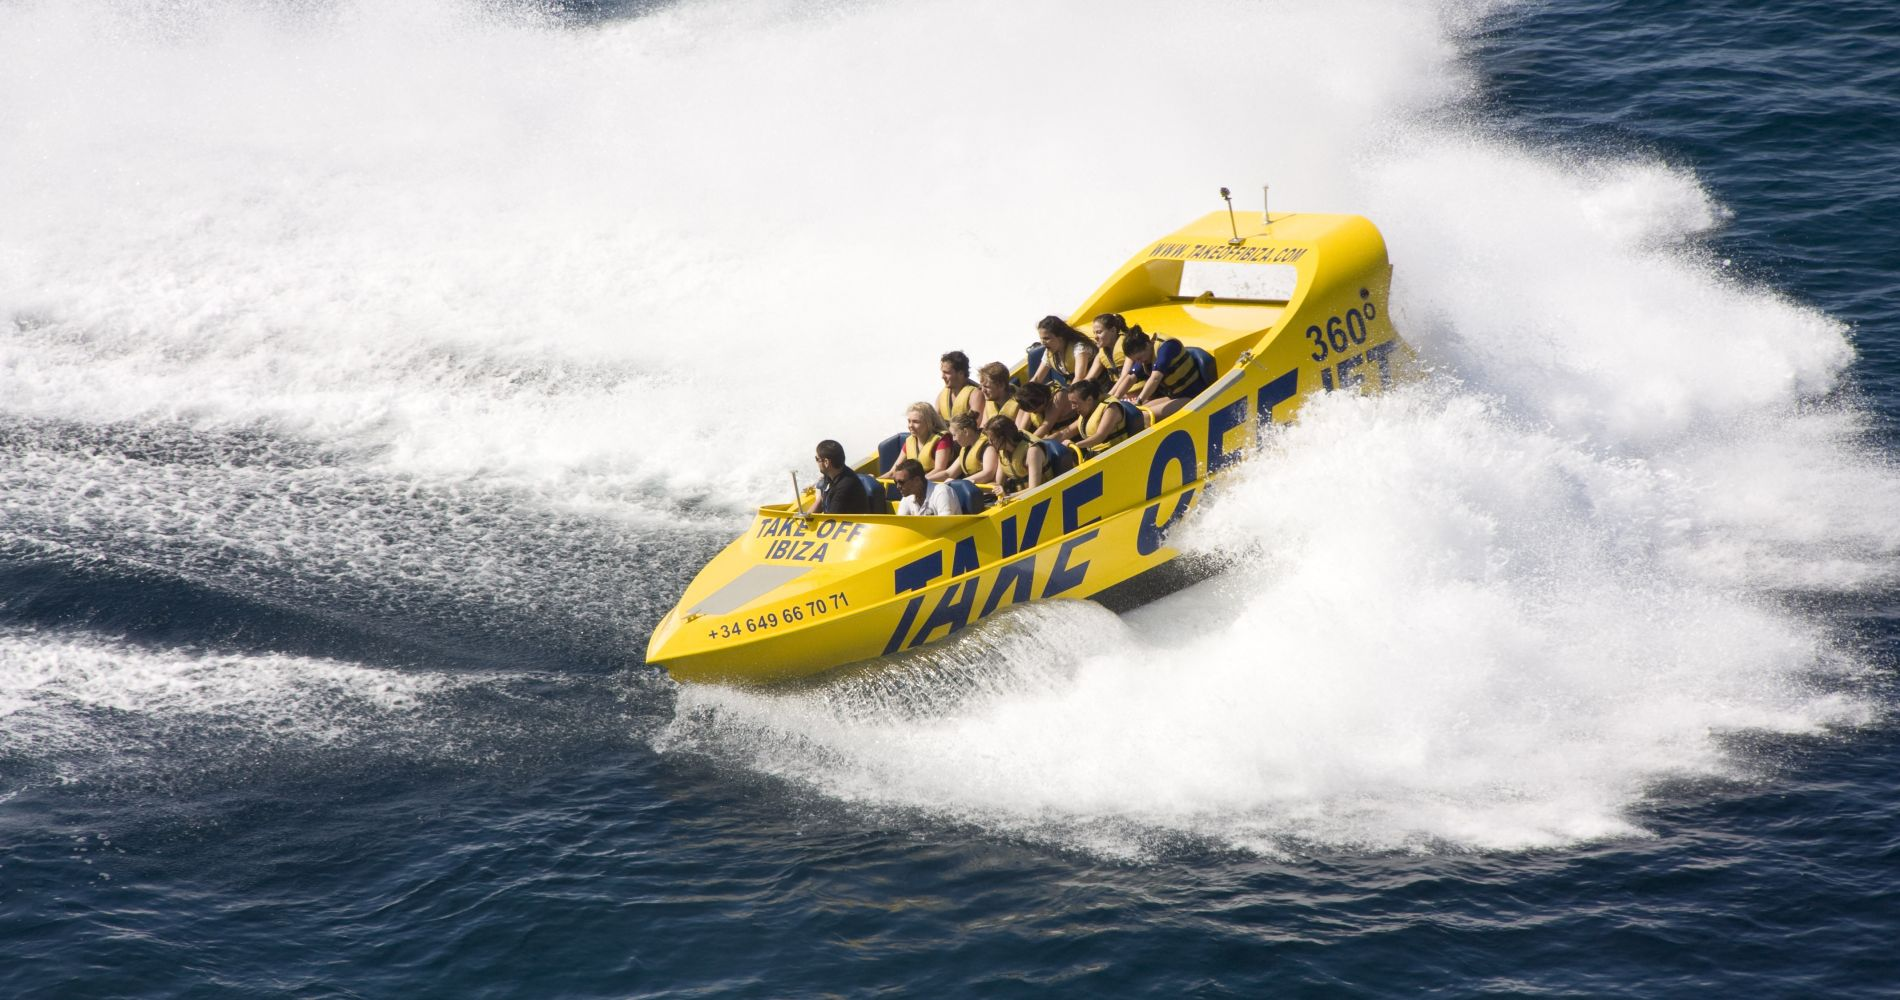 Jet Boat 360 Ride Ibiza Tinggly Experience Gifts